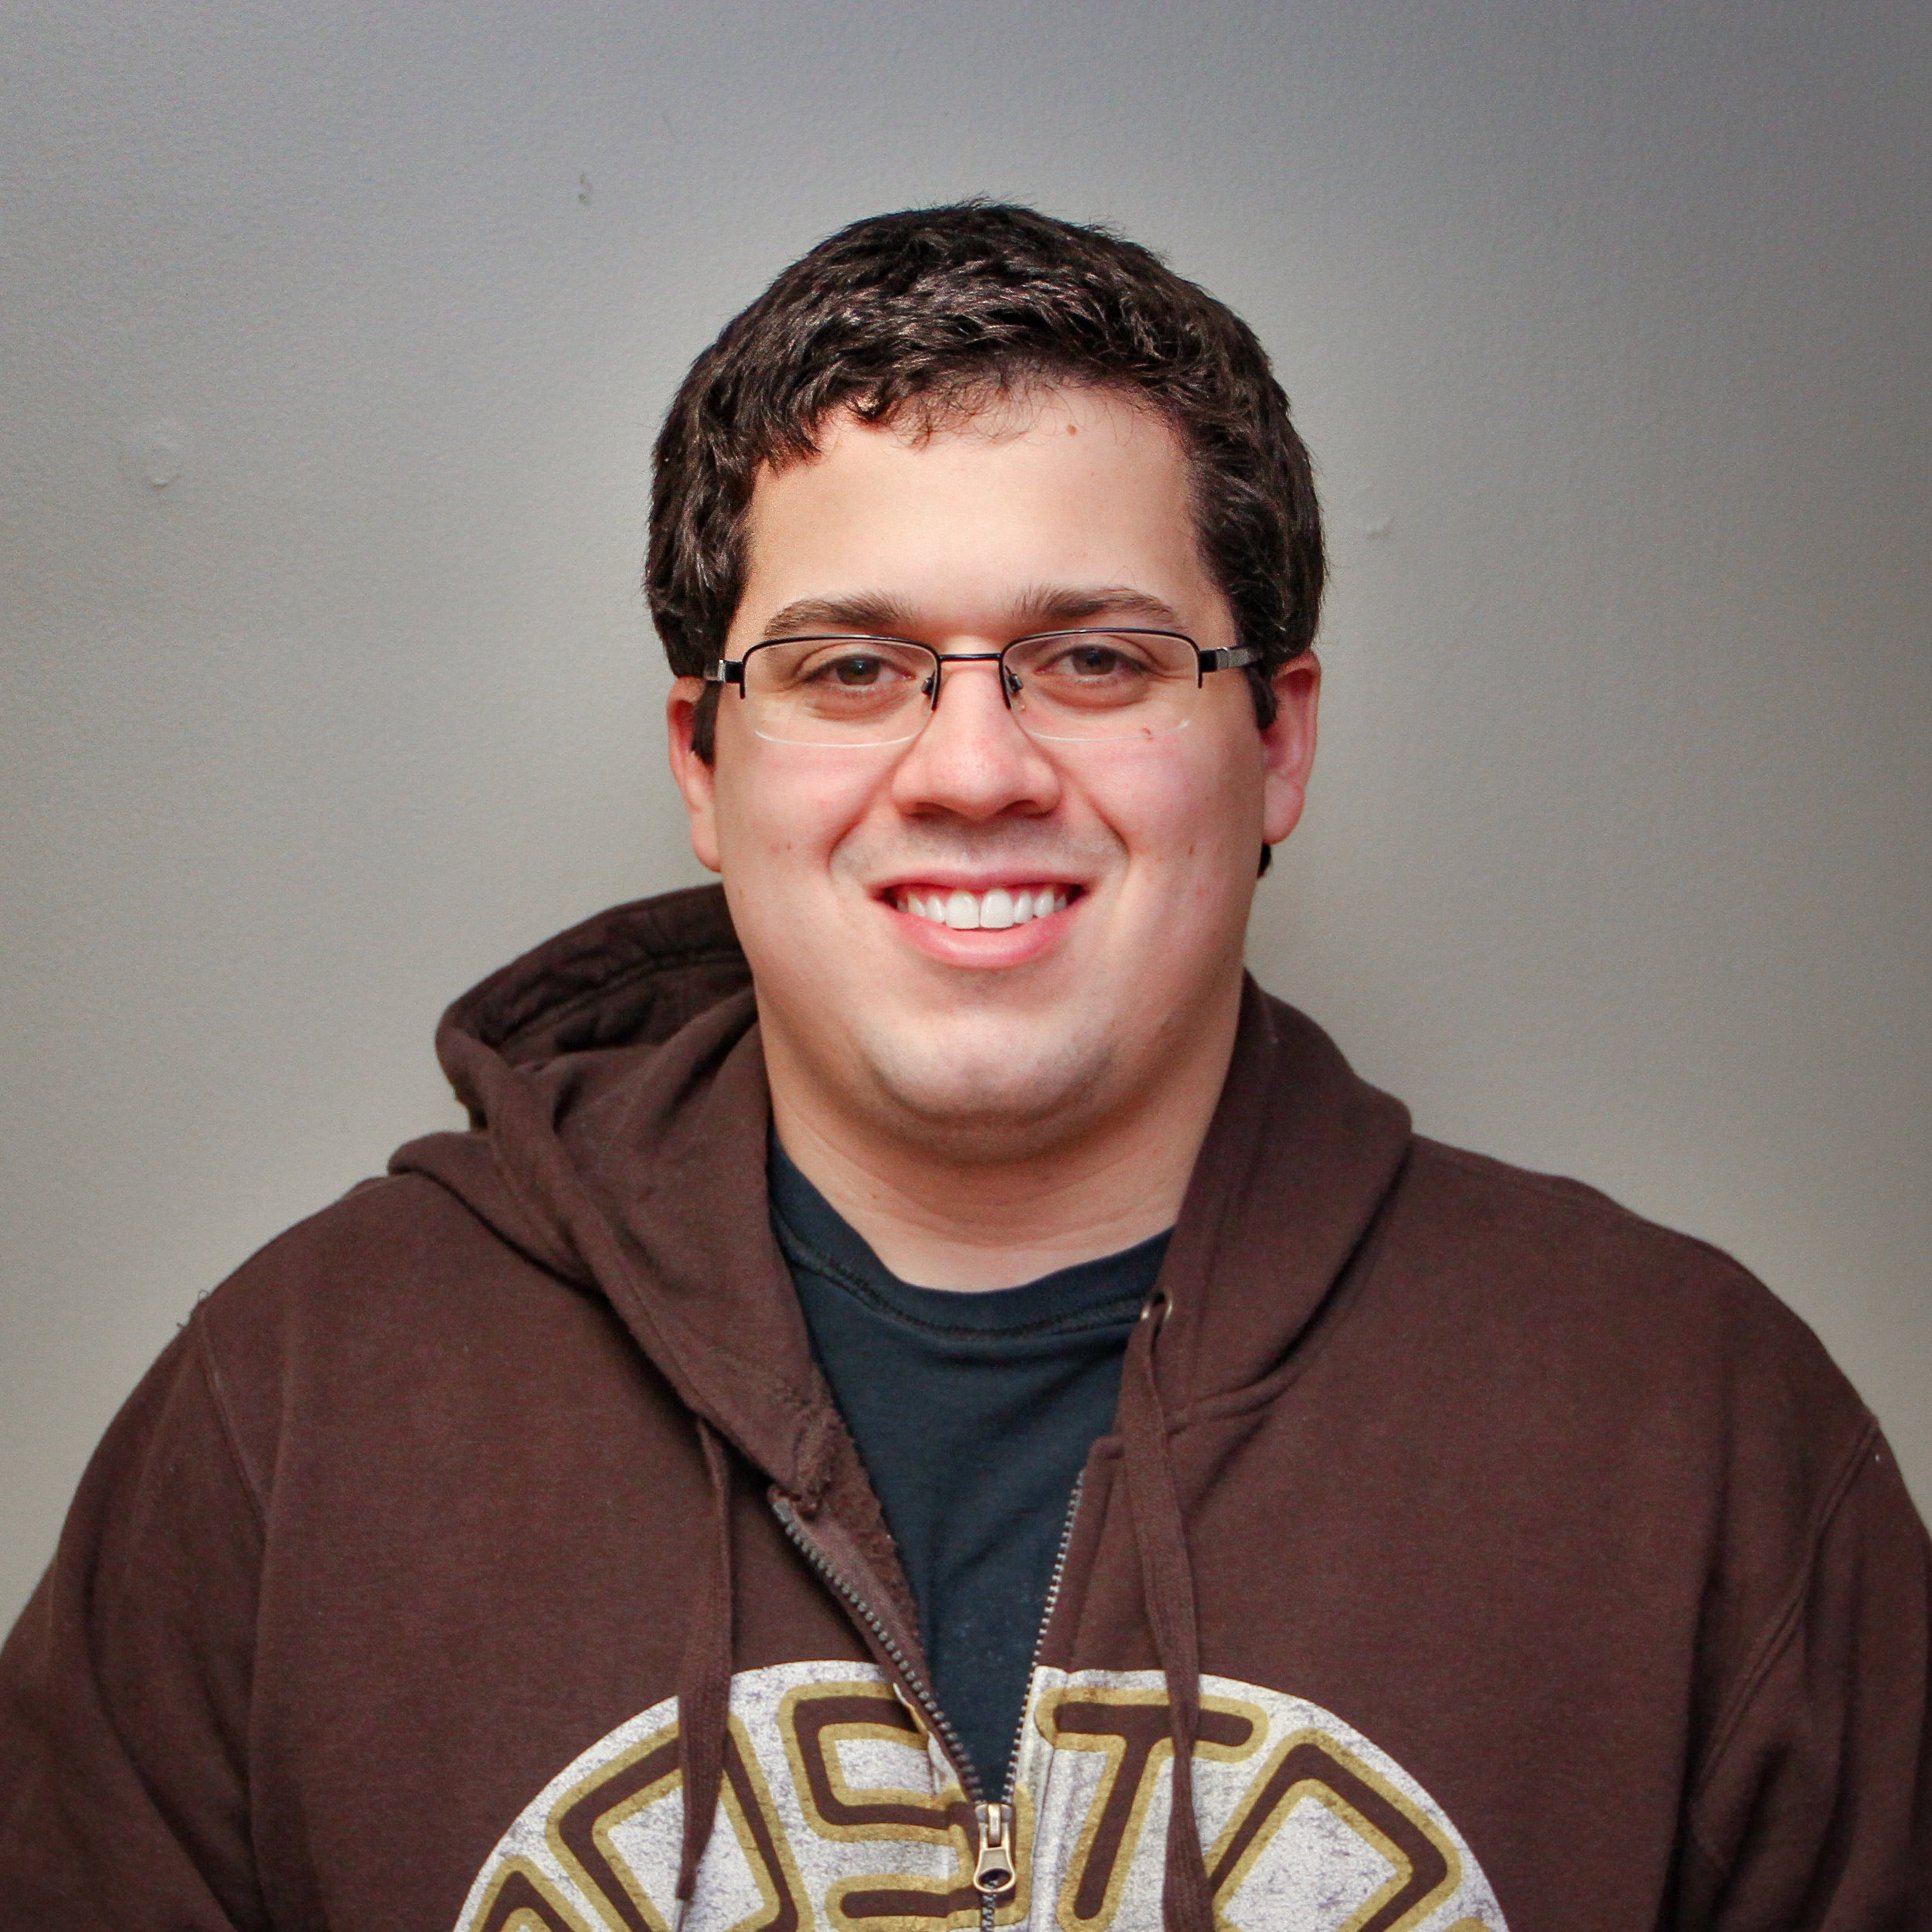 CHRIS RENNIE  - 2nd Assistant Director / Co-Writer